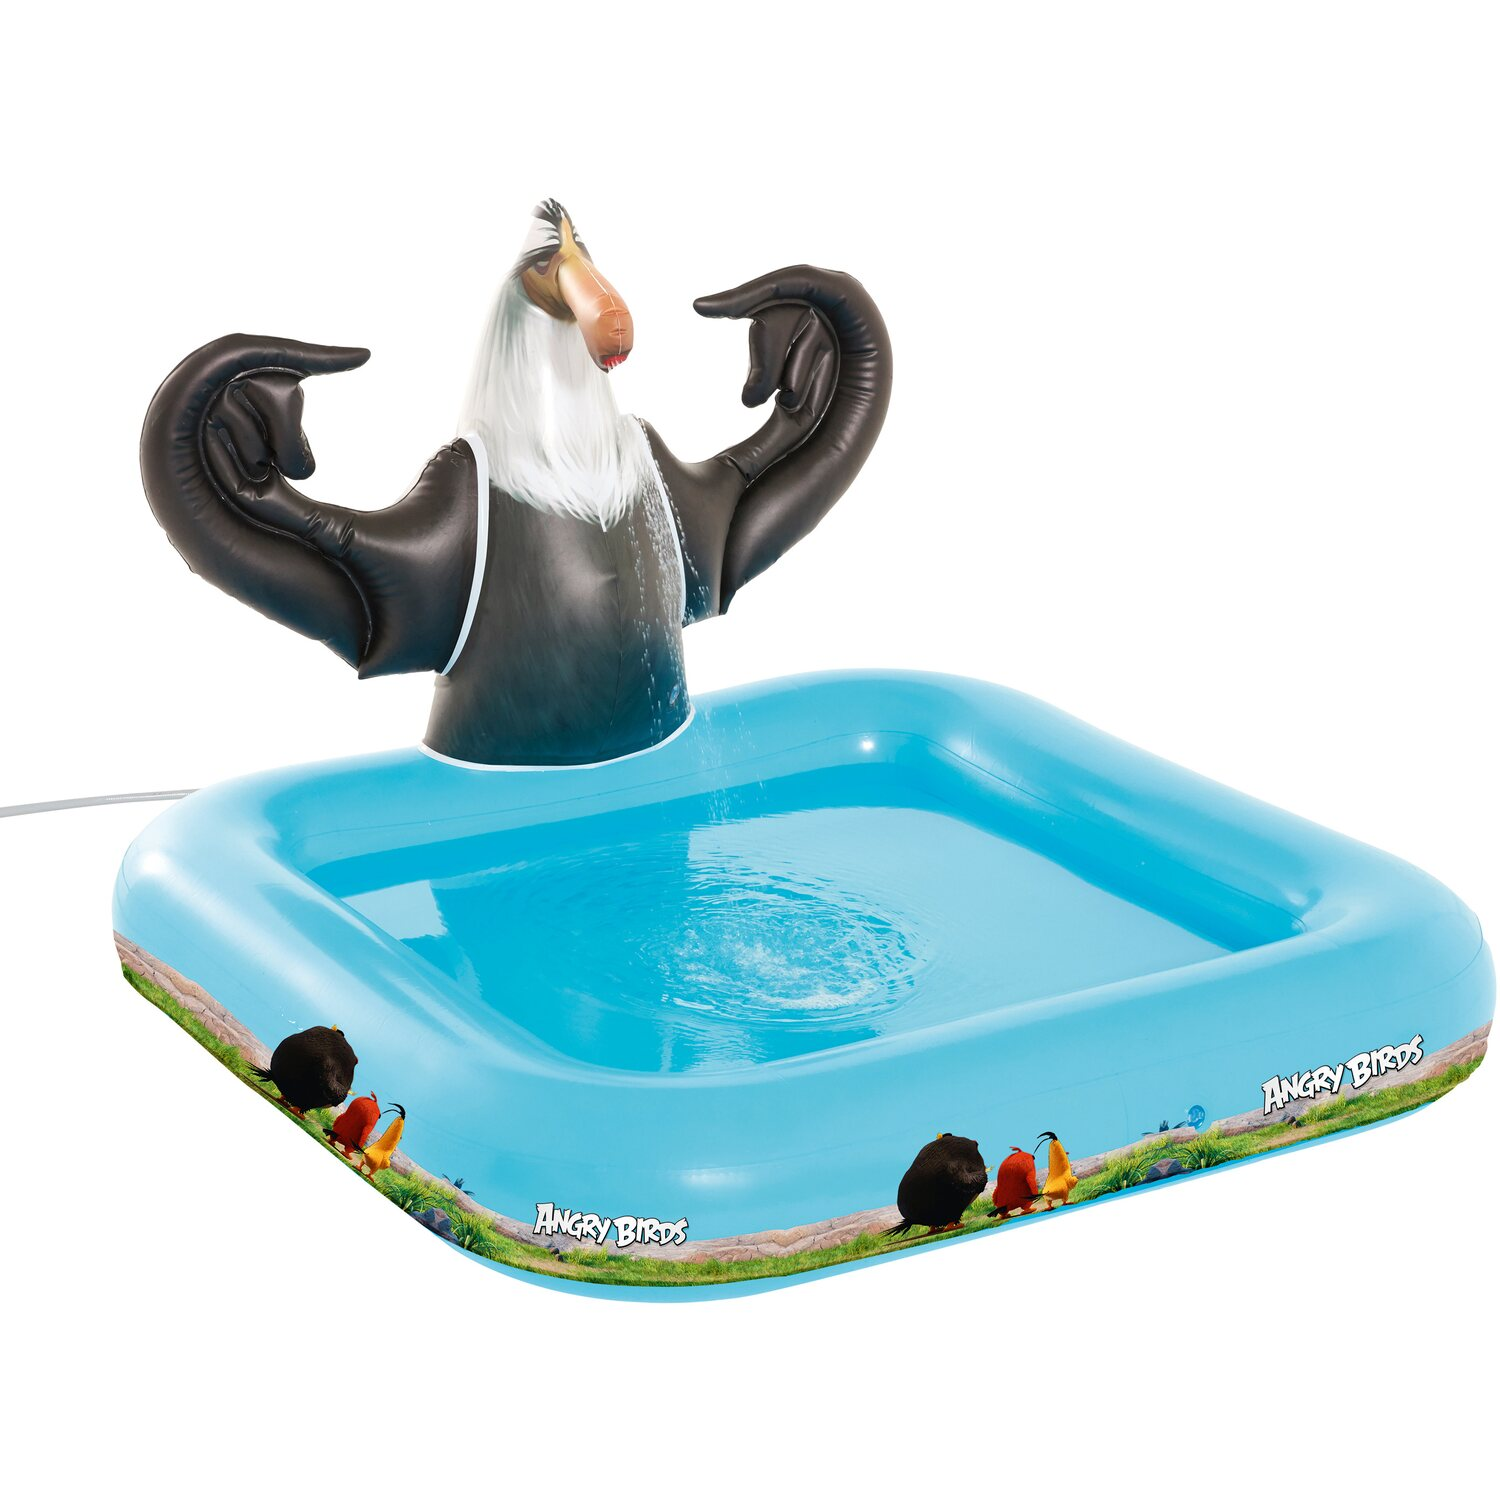 Happy people pool angry birds mighty eagle 128 cm x 120 cm for Obi planschbecken